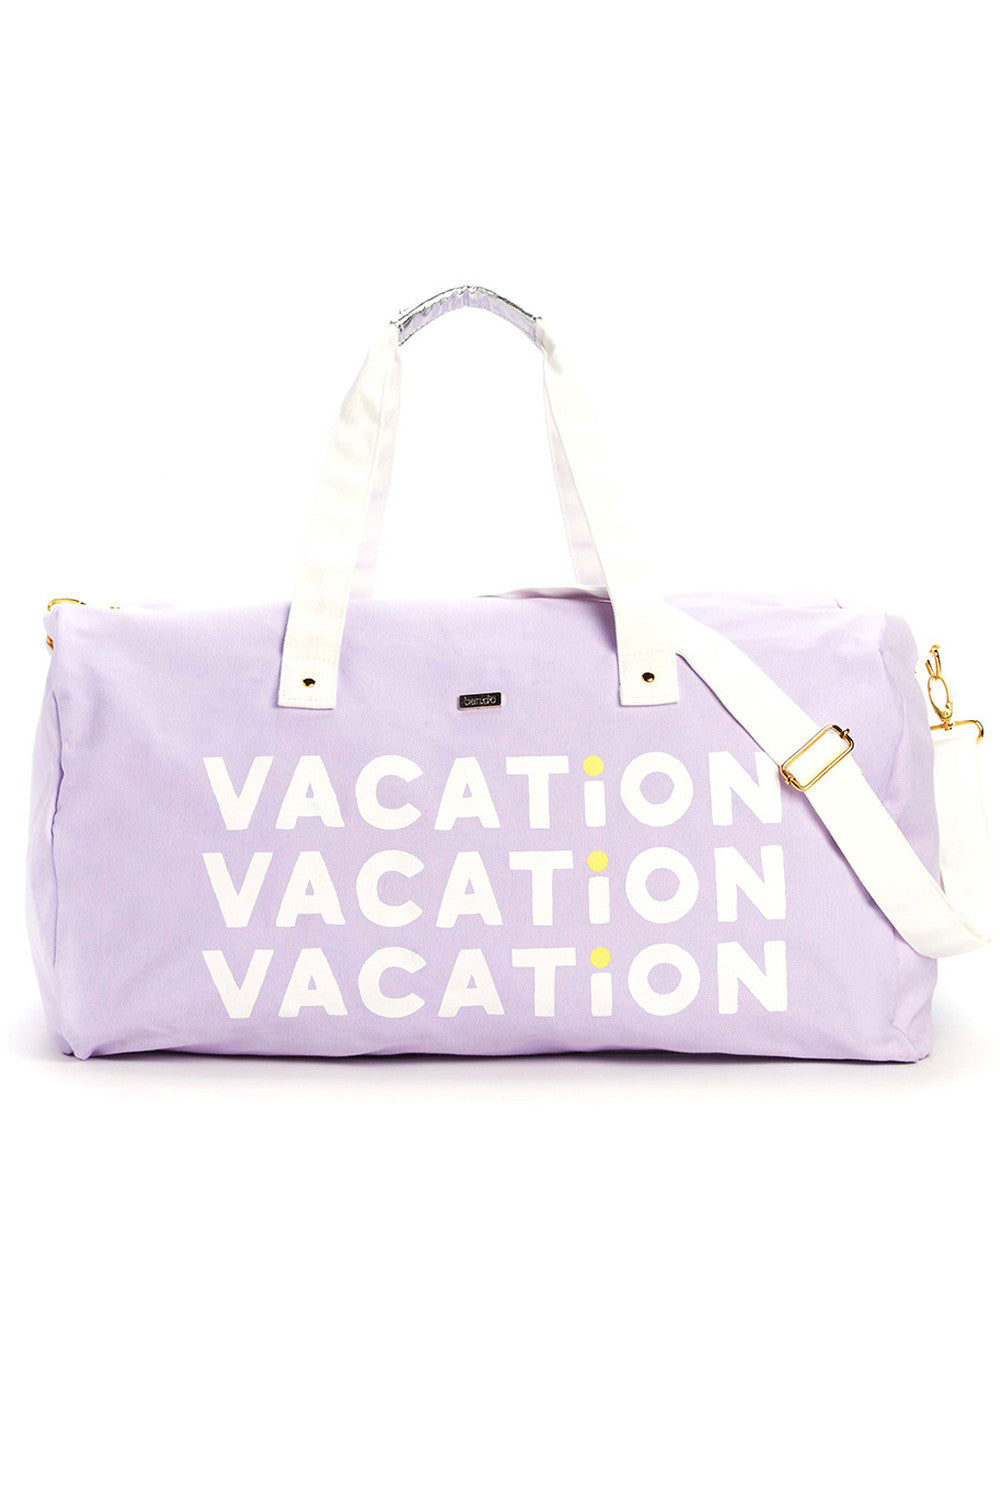 The Getaway Duffle Bag- Vacation